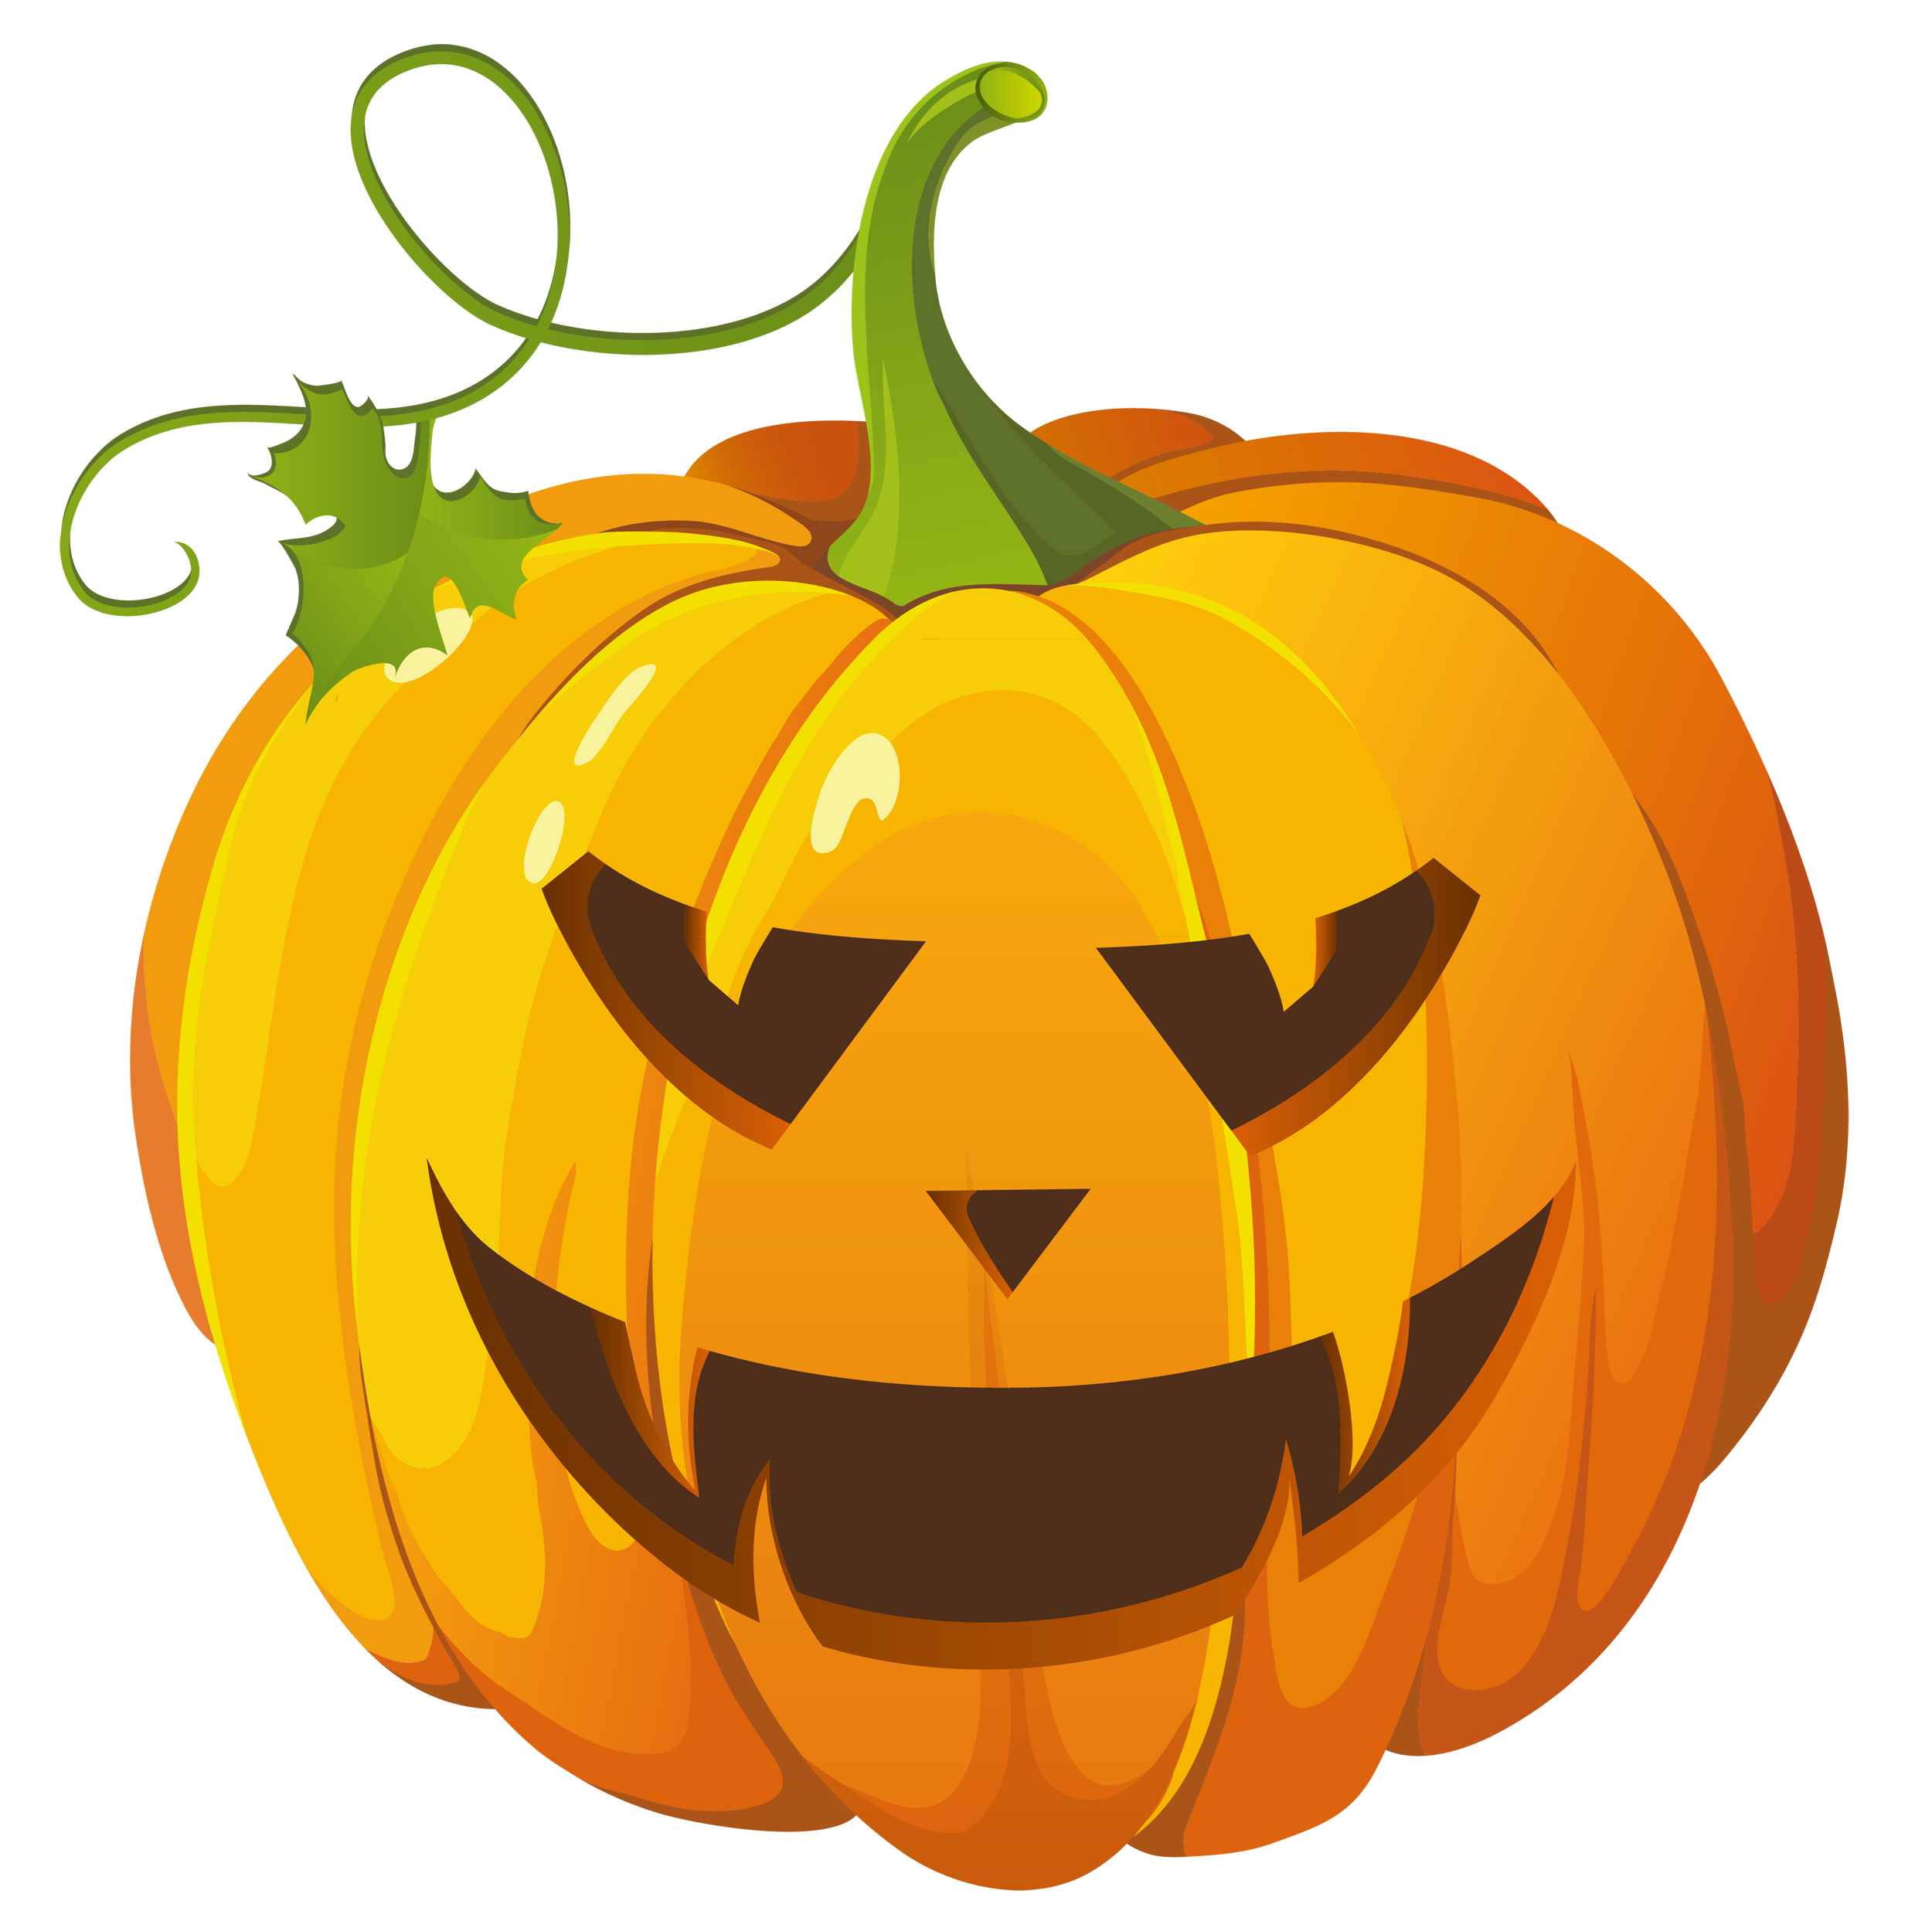 Carve a pumpikin clipart vector royalty free Cute Halloween Pumpkin Clipart | Clipart Panda - Free Clipart Images ... vector royalty free